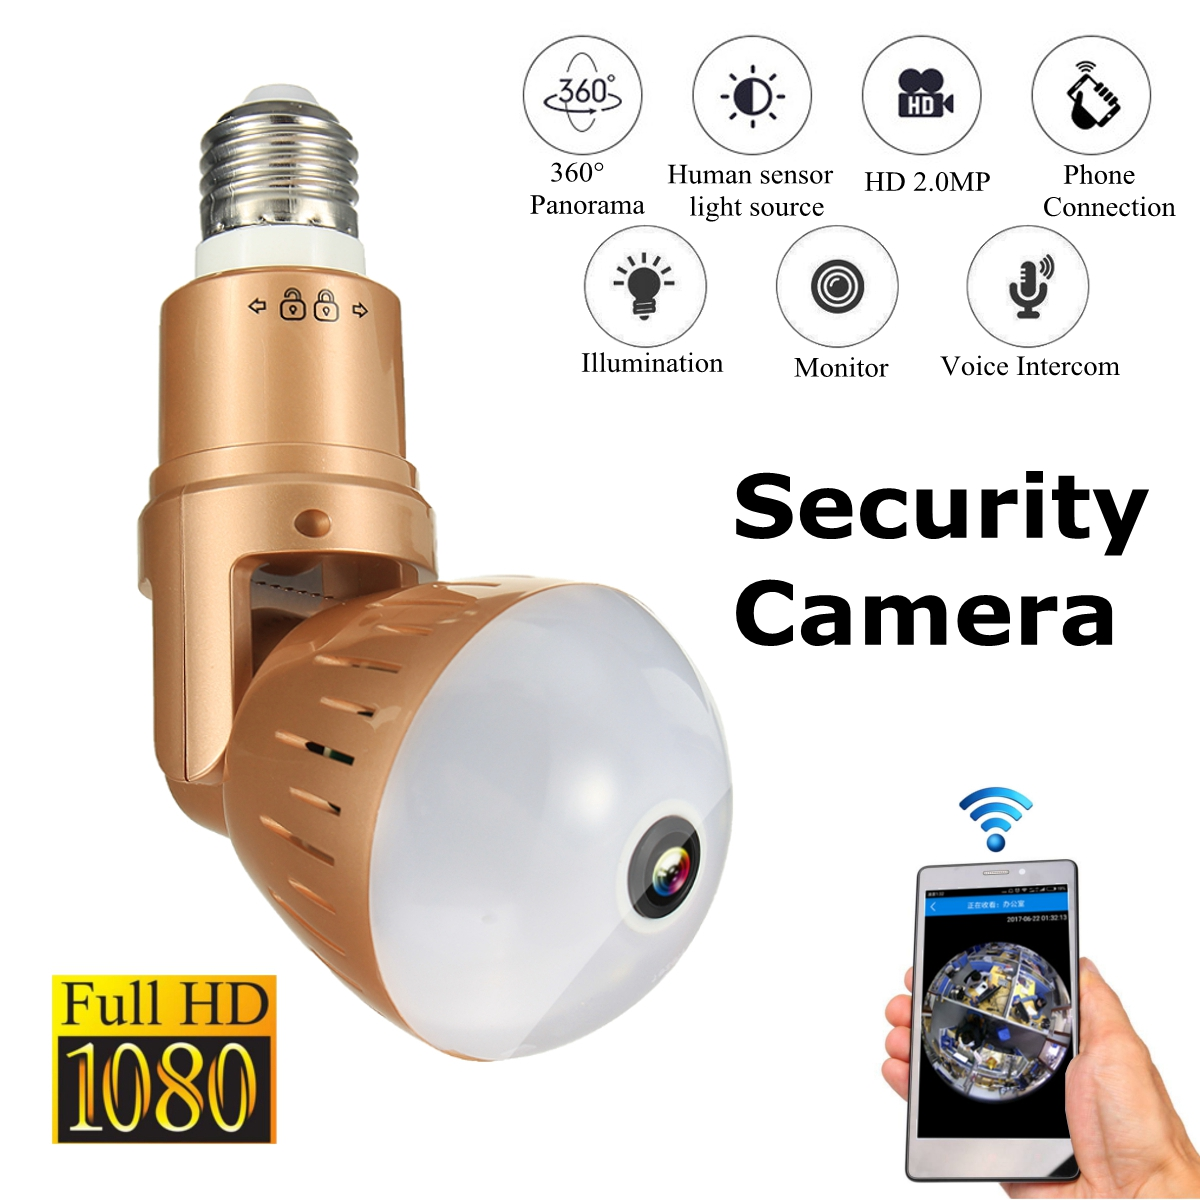 360 Degree 1080P HD Panorama Monitor Panoramic Wireless Wifi IP Light Bulb Security Camera Home Monitor360 Degree 1080P HD Panorama Monitor Panoramic Wireless Wifi IP Light Bulb Security Camera Home Monitor